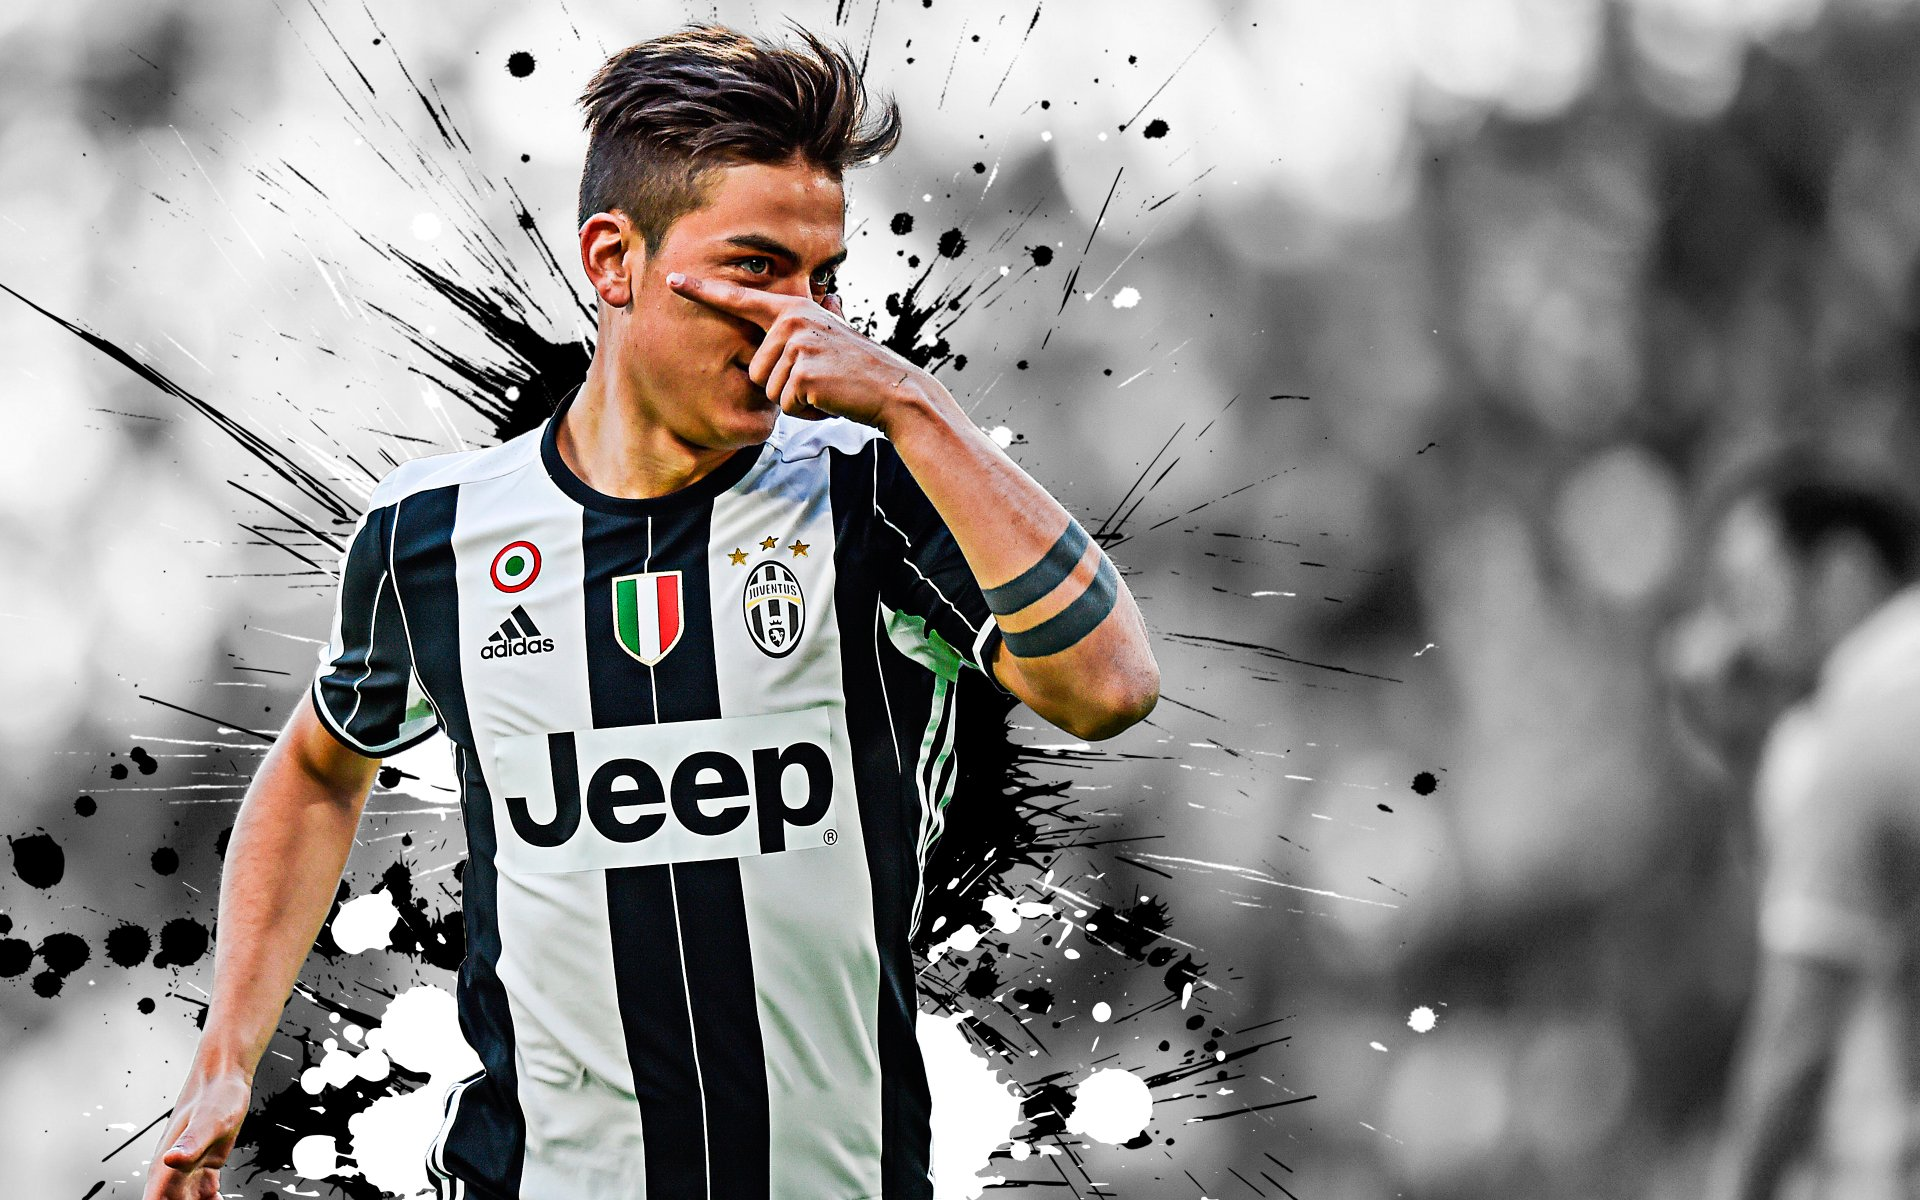 83 Paulo Dybala Hd Wallpapers Background Images Wallpaper Abyss